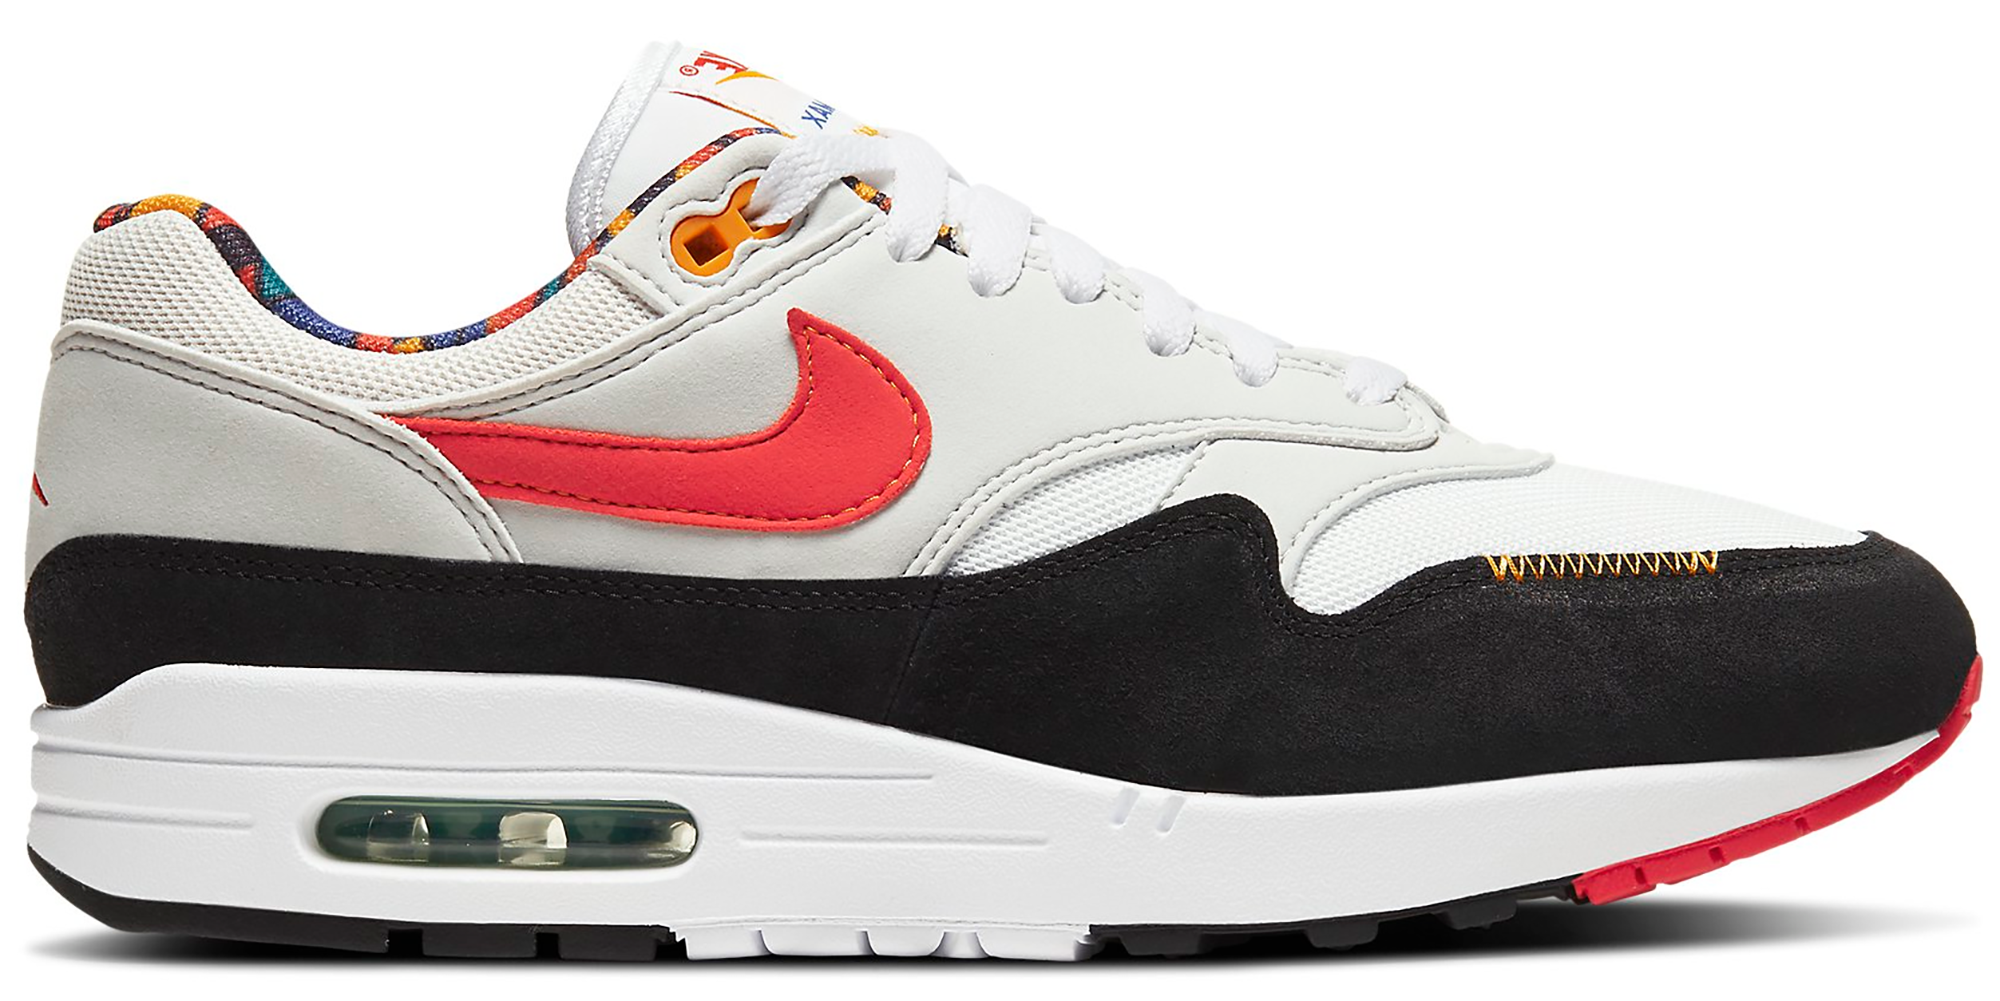 Nike Air Max 1 Live Together, Play